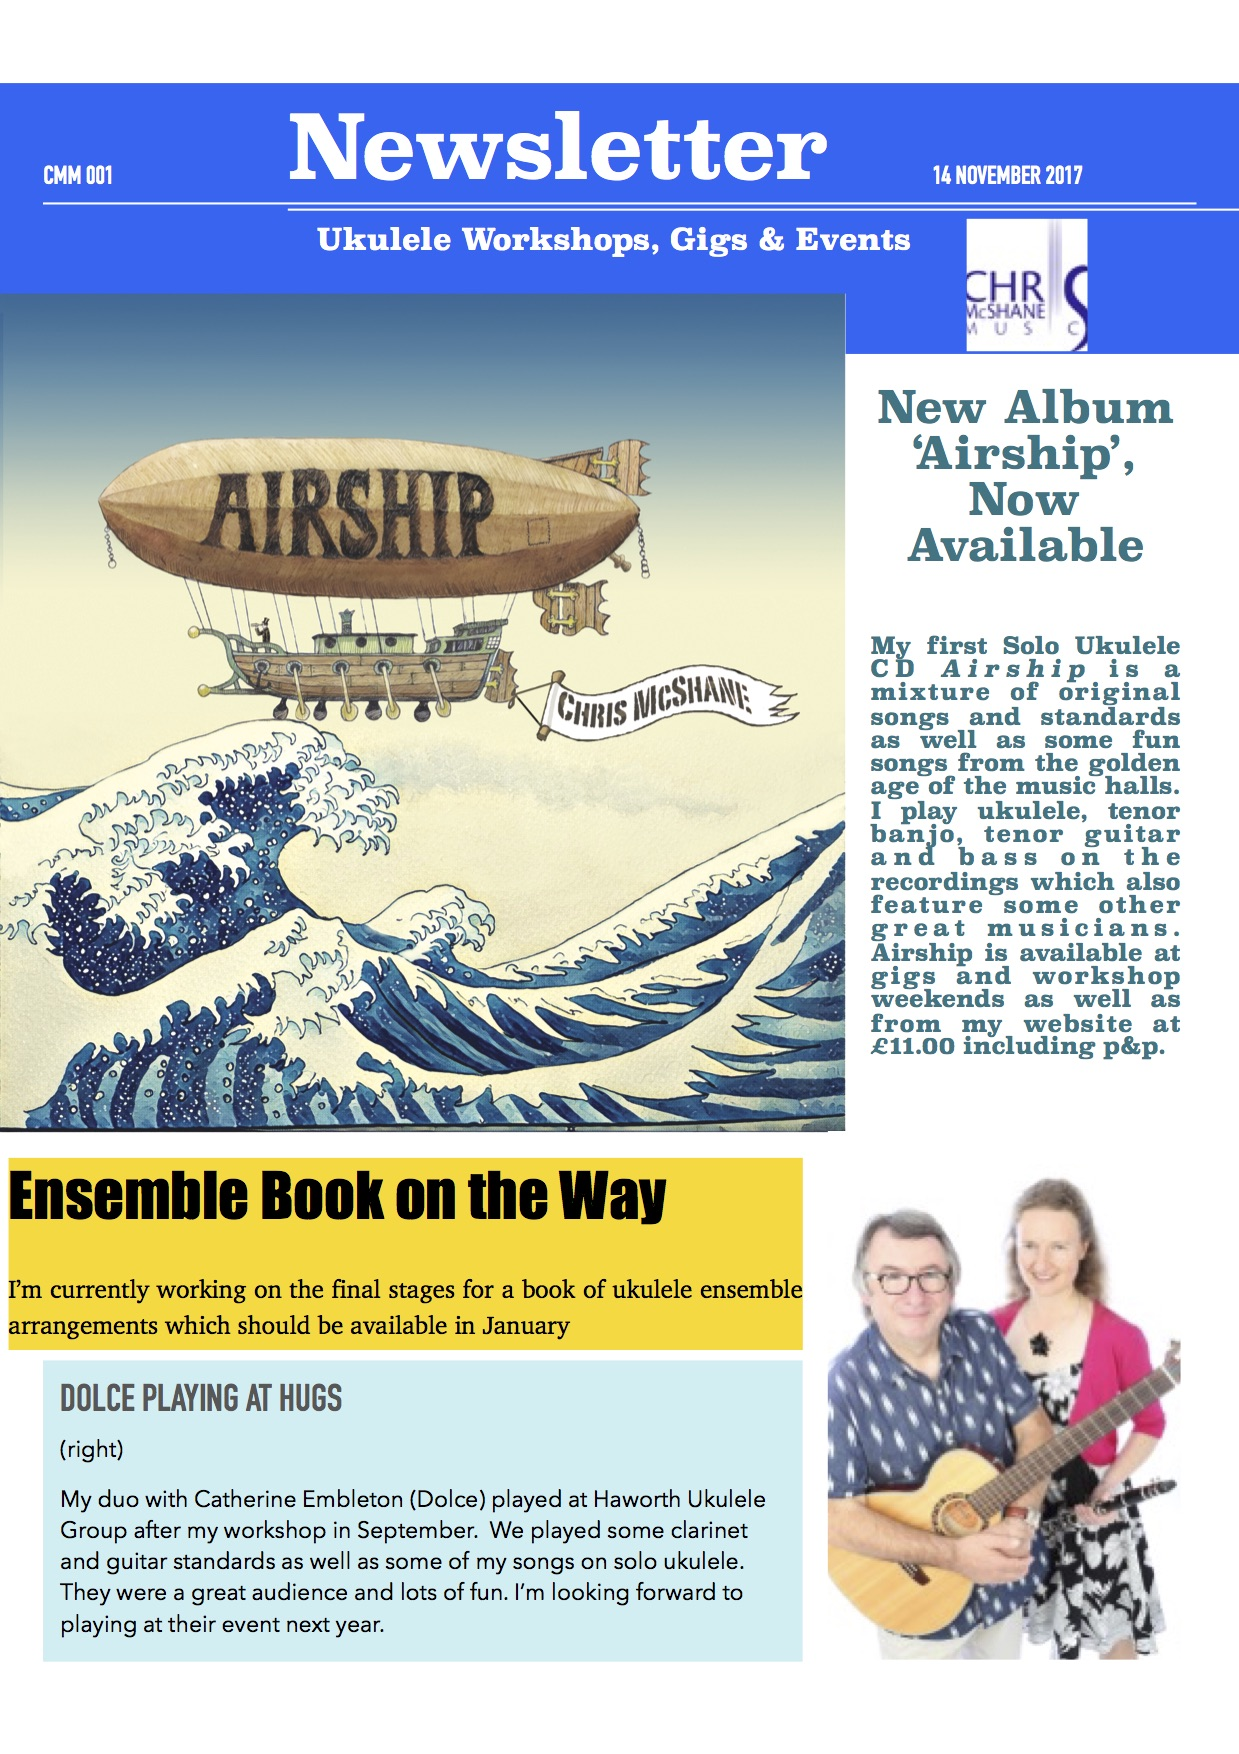 Airship has been launched !